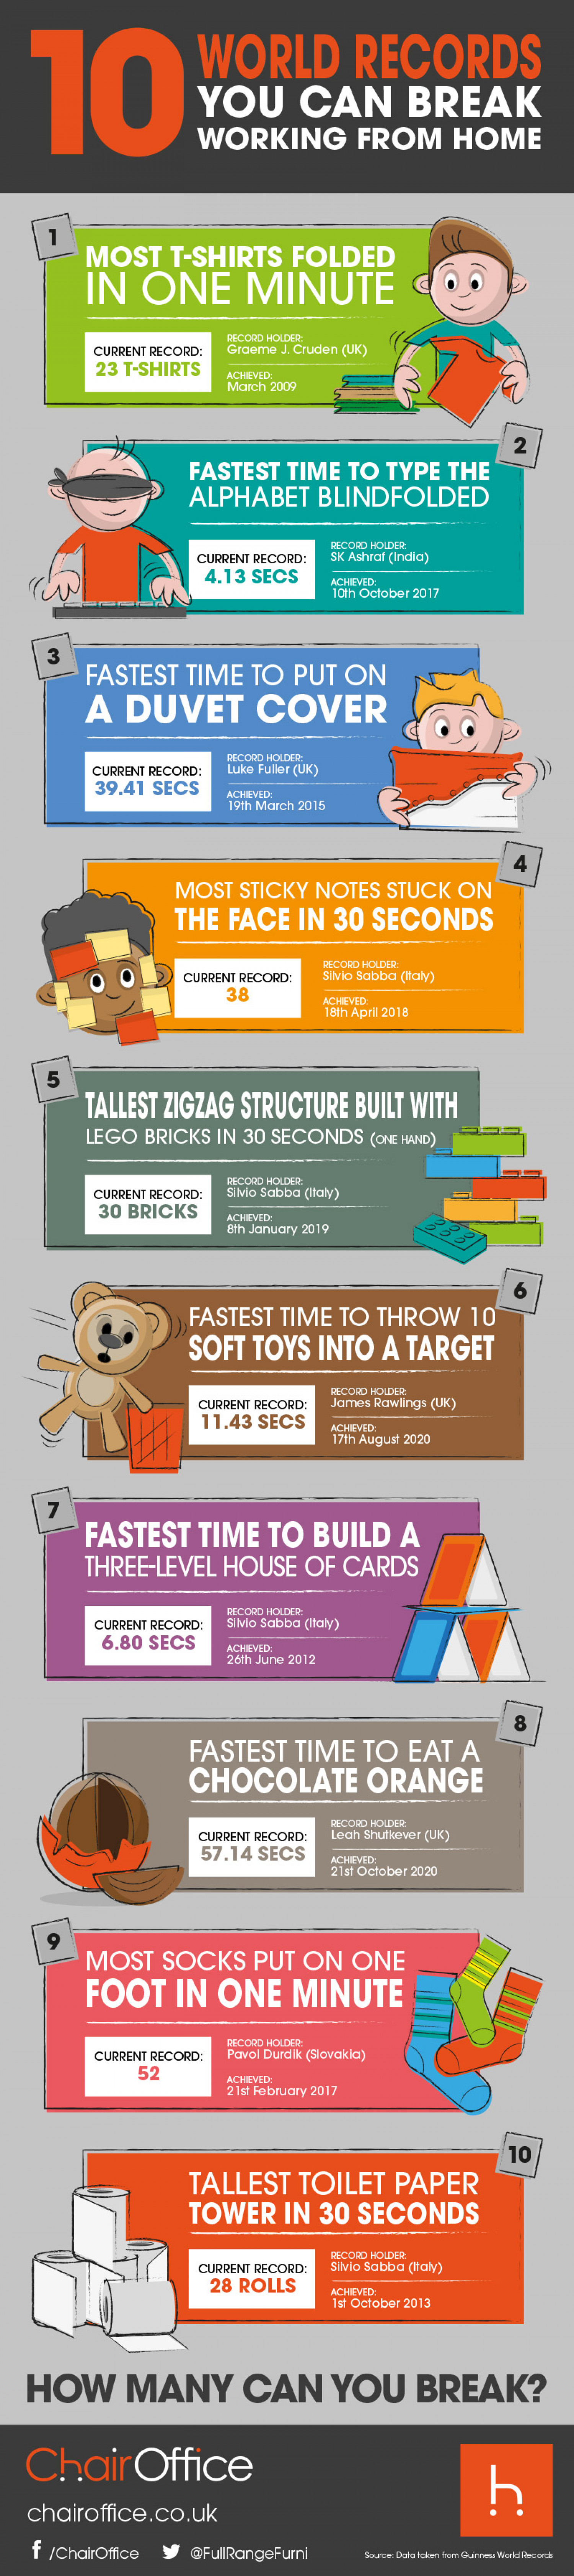 10 World Records You Can Break While Working From Home Infographic